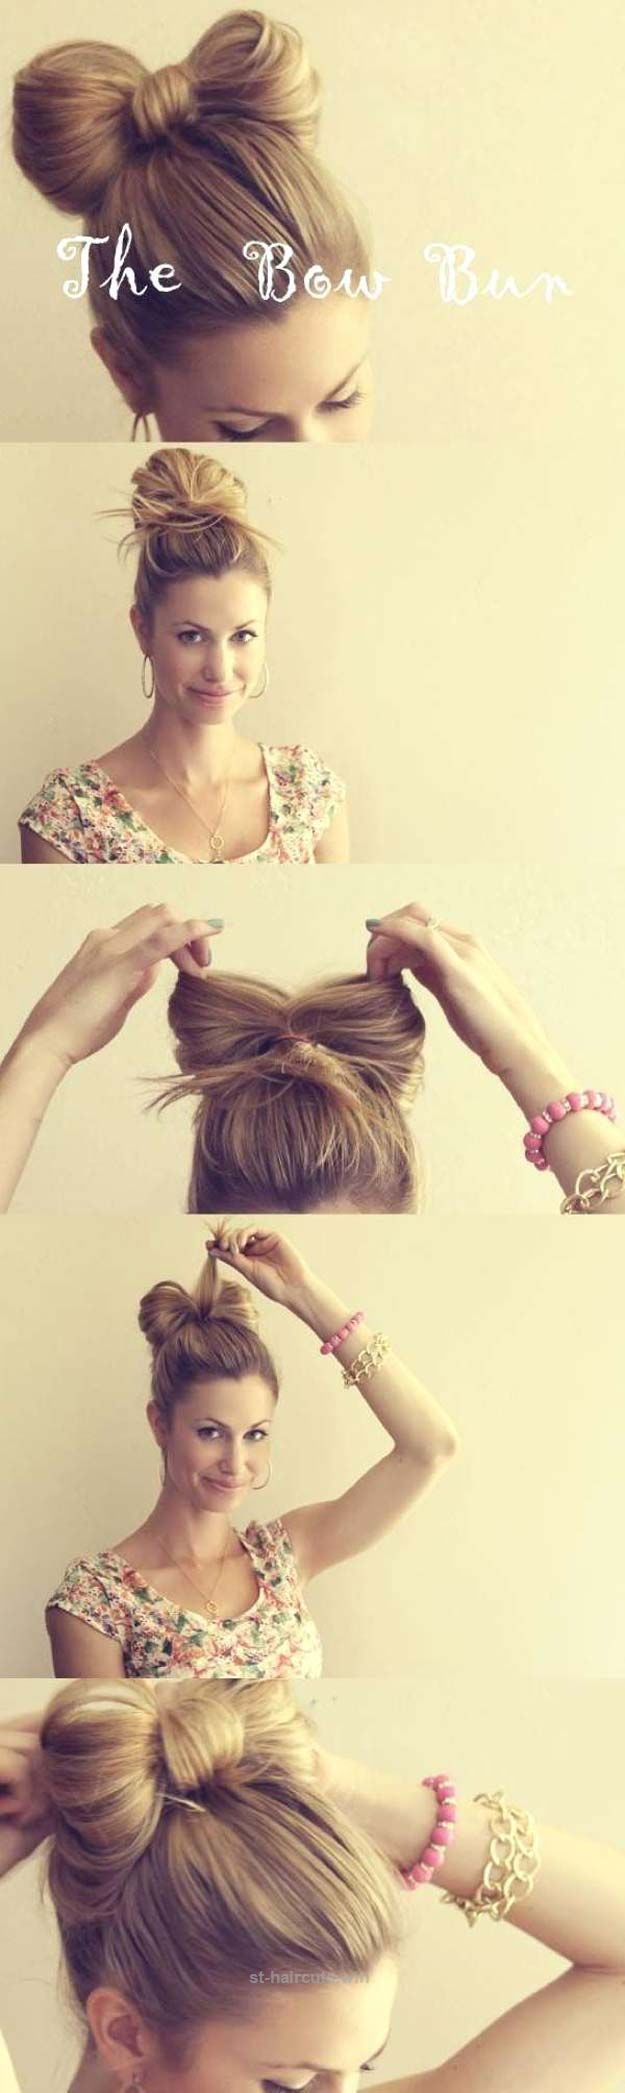 Cool and easy diy hairstyles the hair bow quick and easy ideas